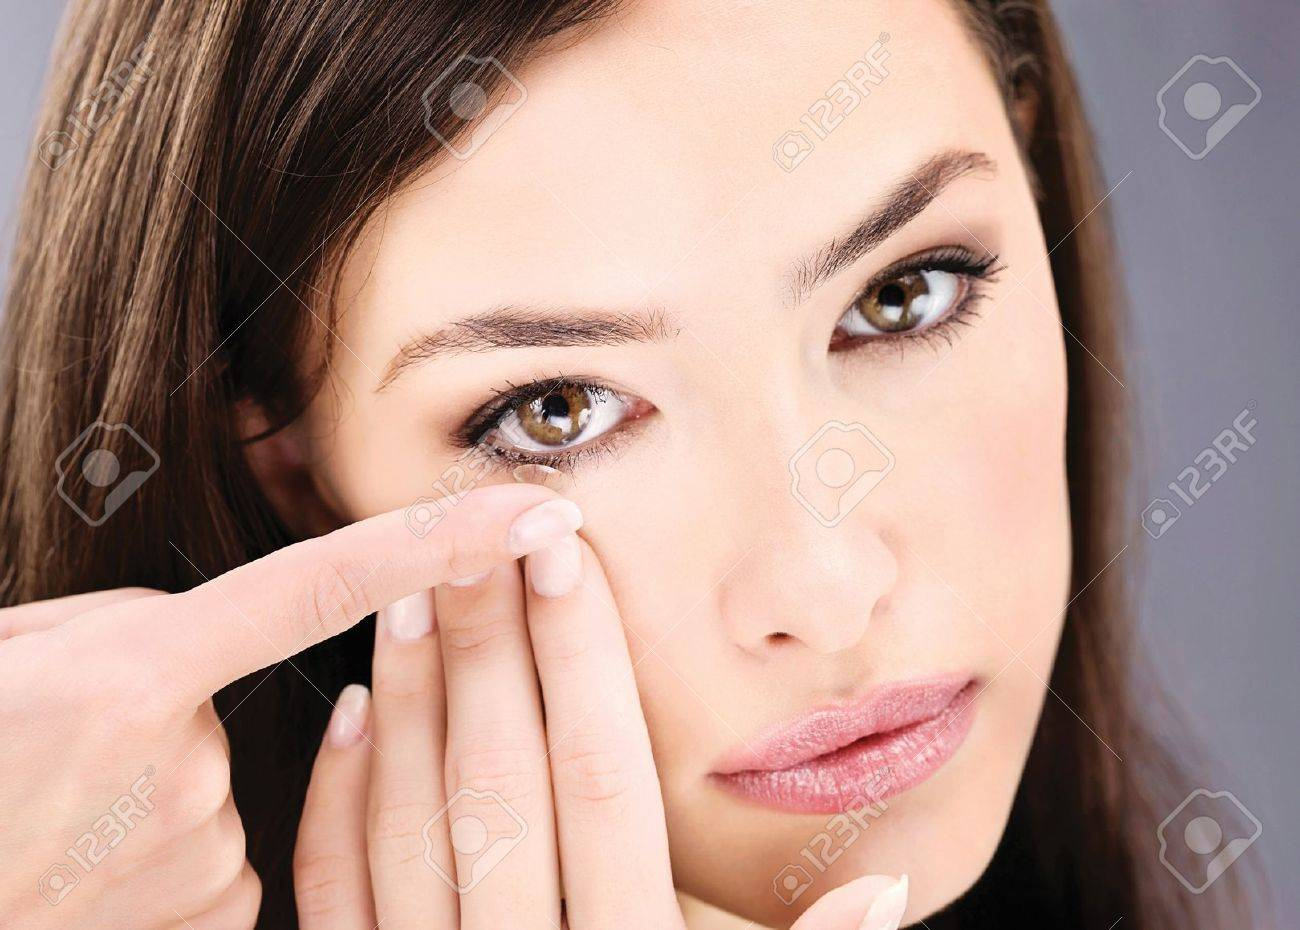 Close up of a woman putting contact lens in her eye Stock Photo - 12105928